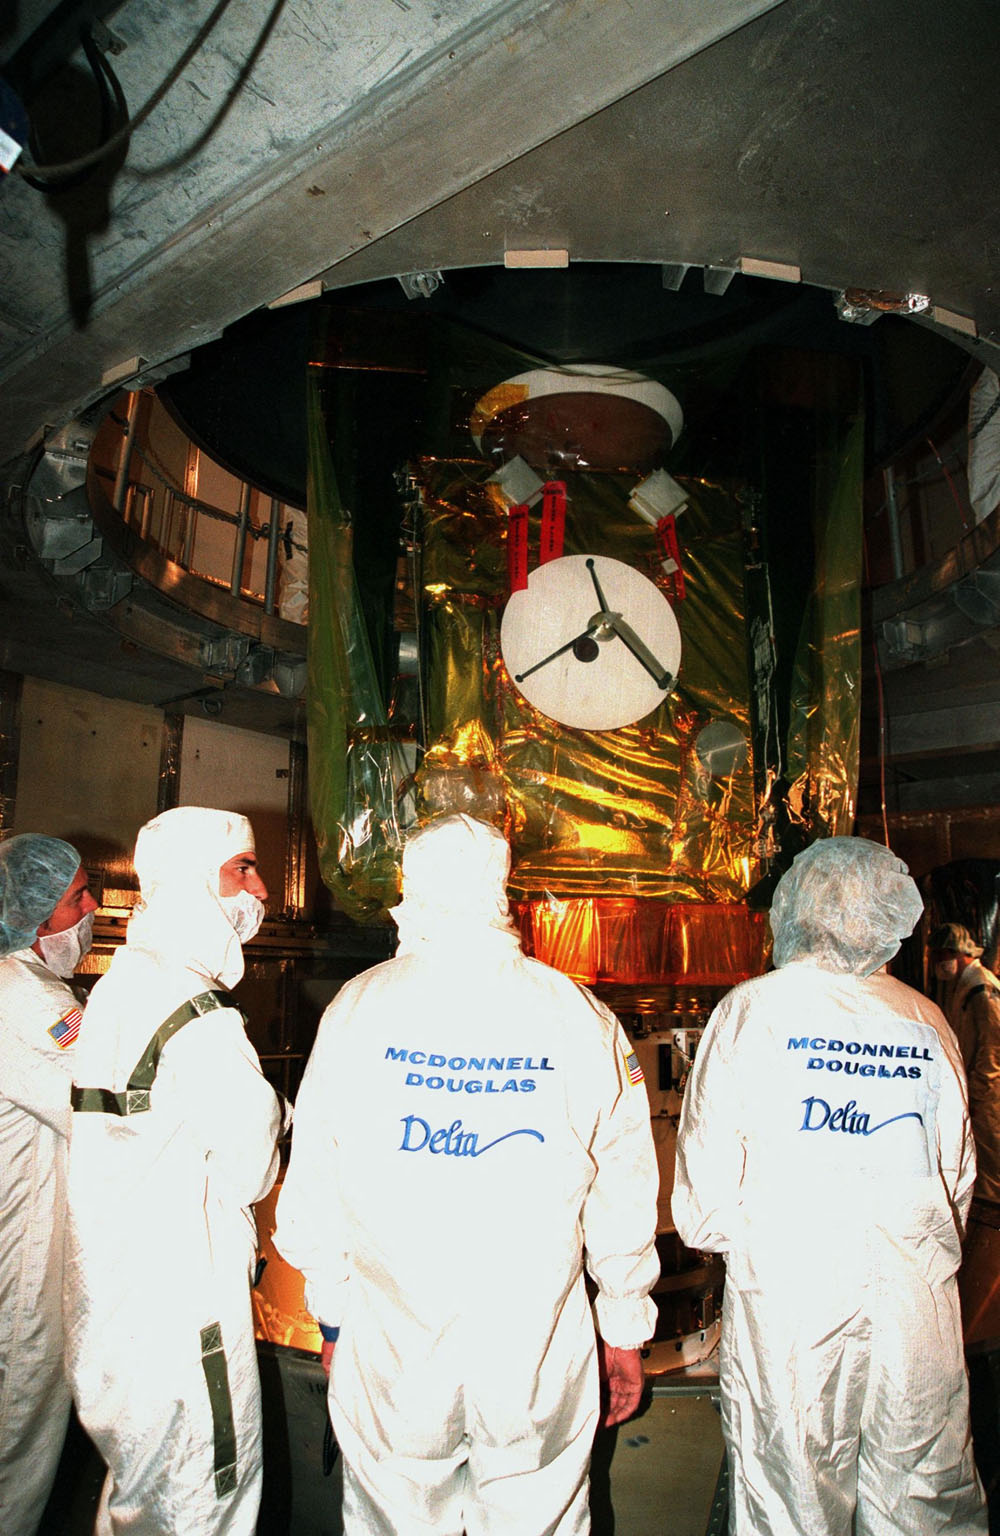 Workers watch as the protective canister surrounding the Stardust spacecraft is removed at Launch Pad 17-A, Cape Canaveral Air Station. Preparations continue for liftoff of the Boeing Delta II rocket carrying Stardust on Feb. 6. Stardust is destined for a close encounter with the comet Wild 2 in January 2004. Using a silicon-based substance called aerogel, Stardust will capture comet particles flying off the nucleus of the comet. The spacecraft also will bring back samples of interstellar dust. These materials consist of ancient pre-solar interstellar grains and other remnants left over from the formation of the solar system. Scientists expect their analysis to provide important insights into the evolution of the sun and planets and possibly into the origin of life itself. The collected samples will return to Earth in a sample return capsule to be jettisoned as Stardust swings by Earth in January 2006